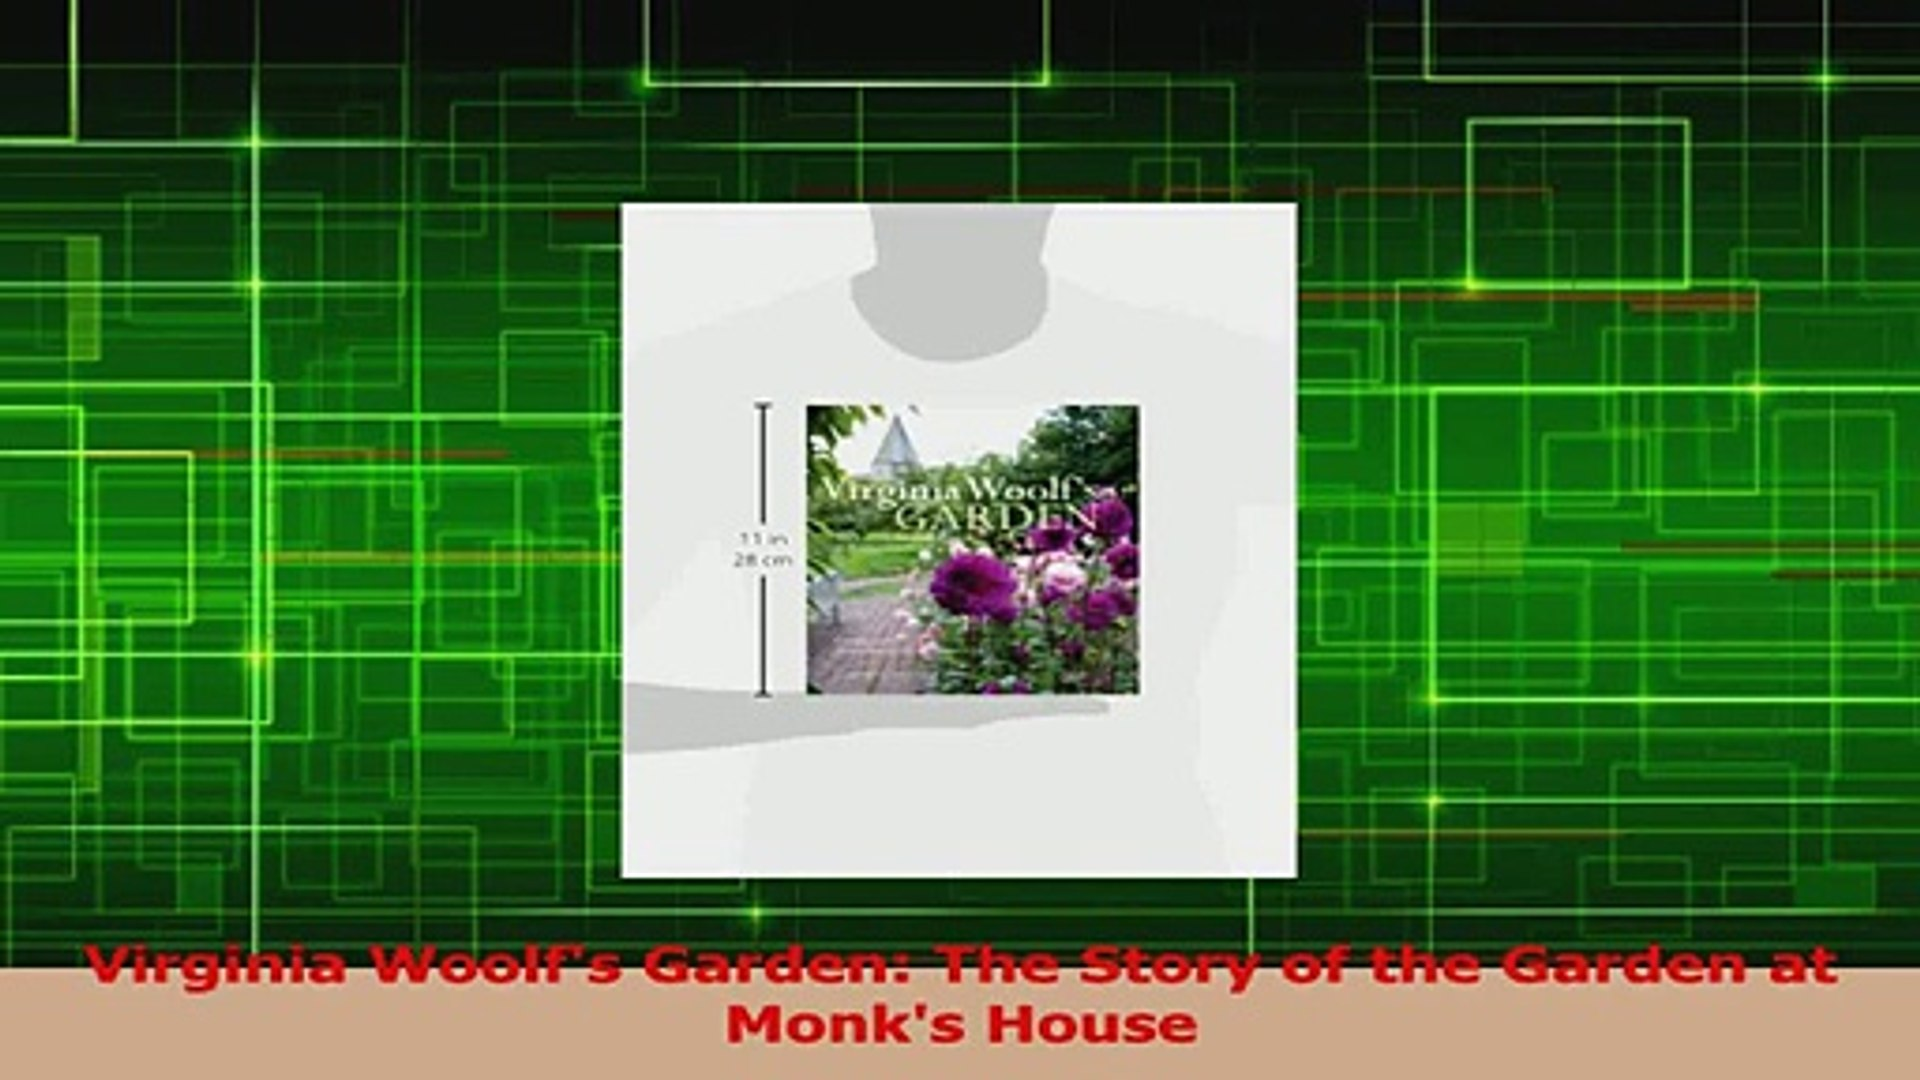 Read  Virginia Woolfs Garden The Story of the Garden at Monks House Ebook Free